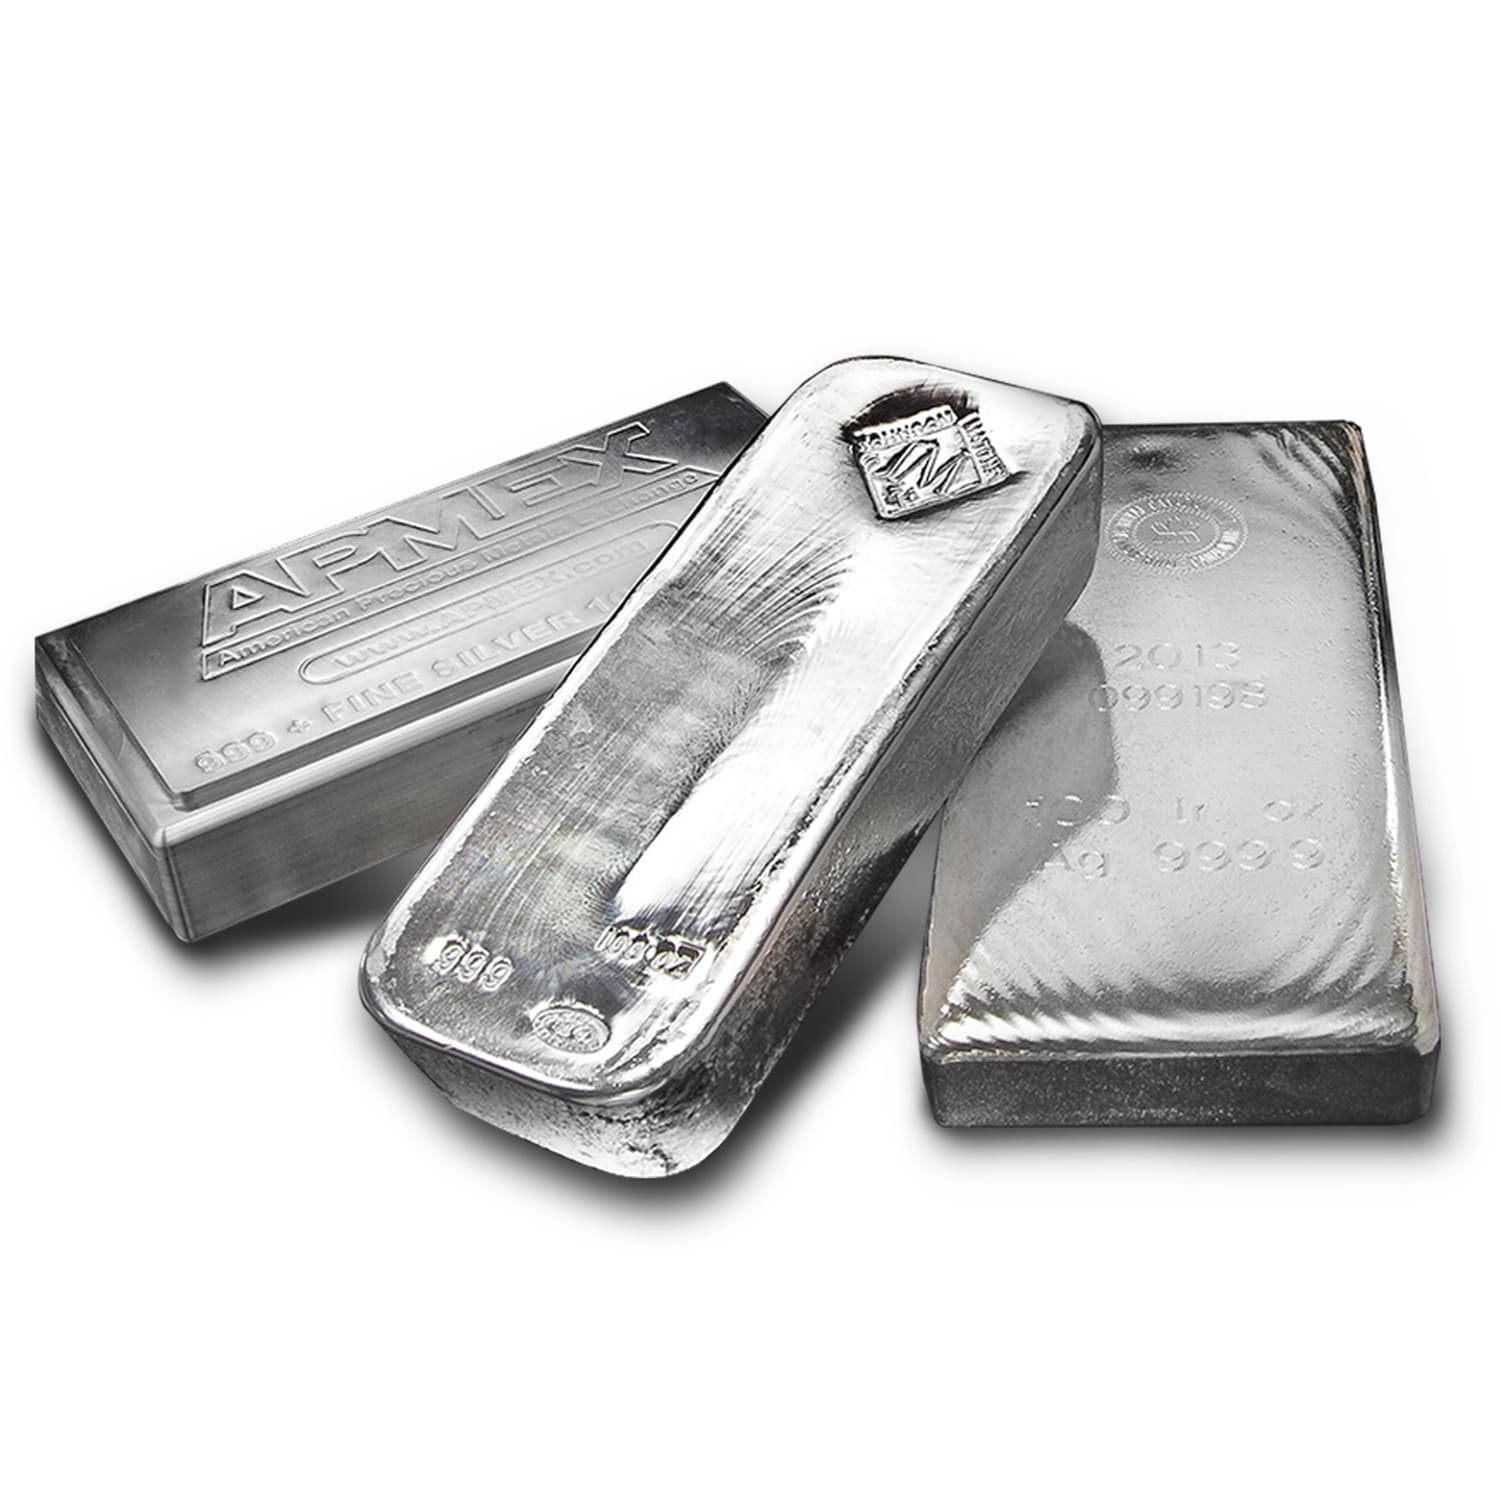 103.30 oz Silver Bar - Secondary Market